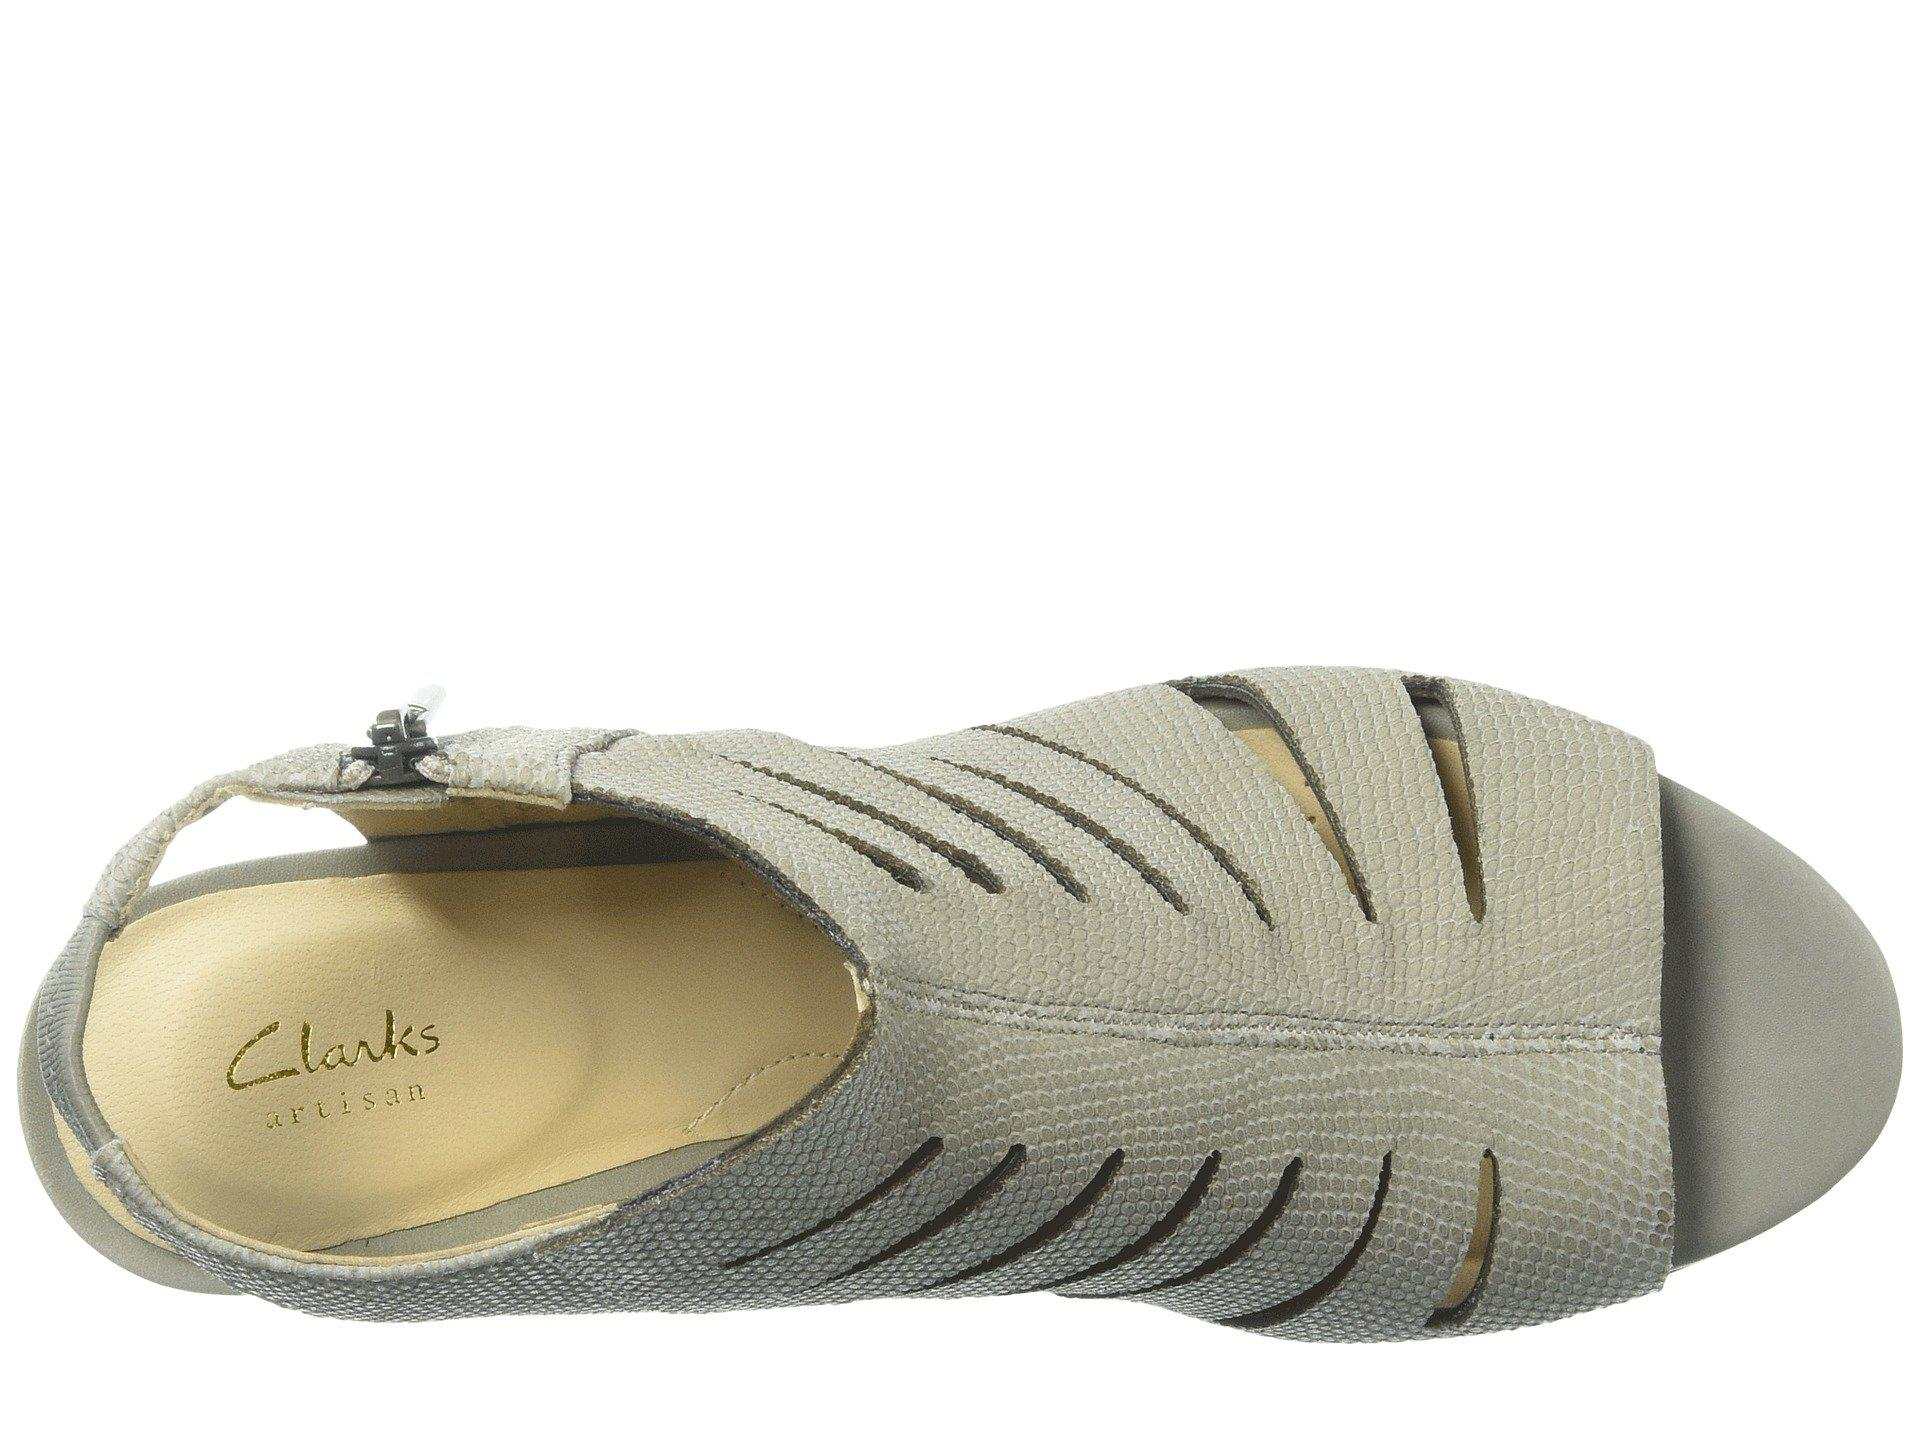 6bf1cd358dc Lyst - Clarks Deloria Ivy in Natural - Save 36.470588235294116%